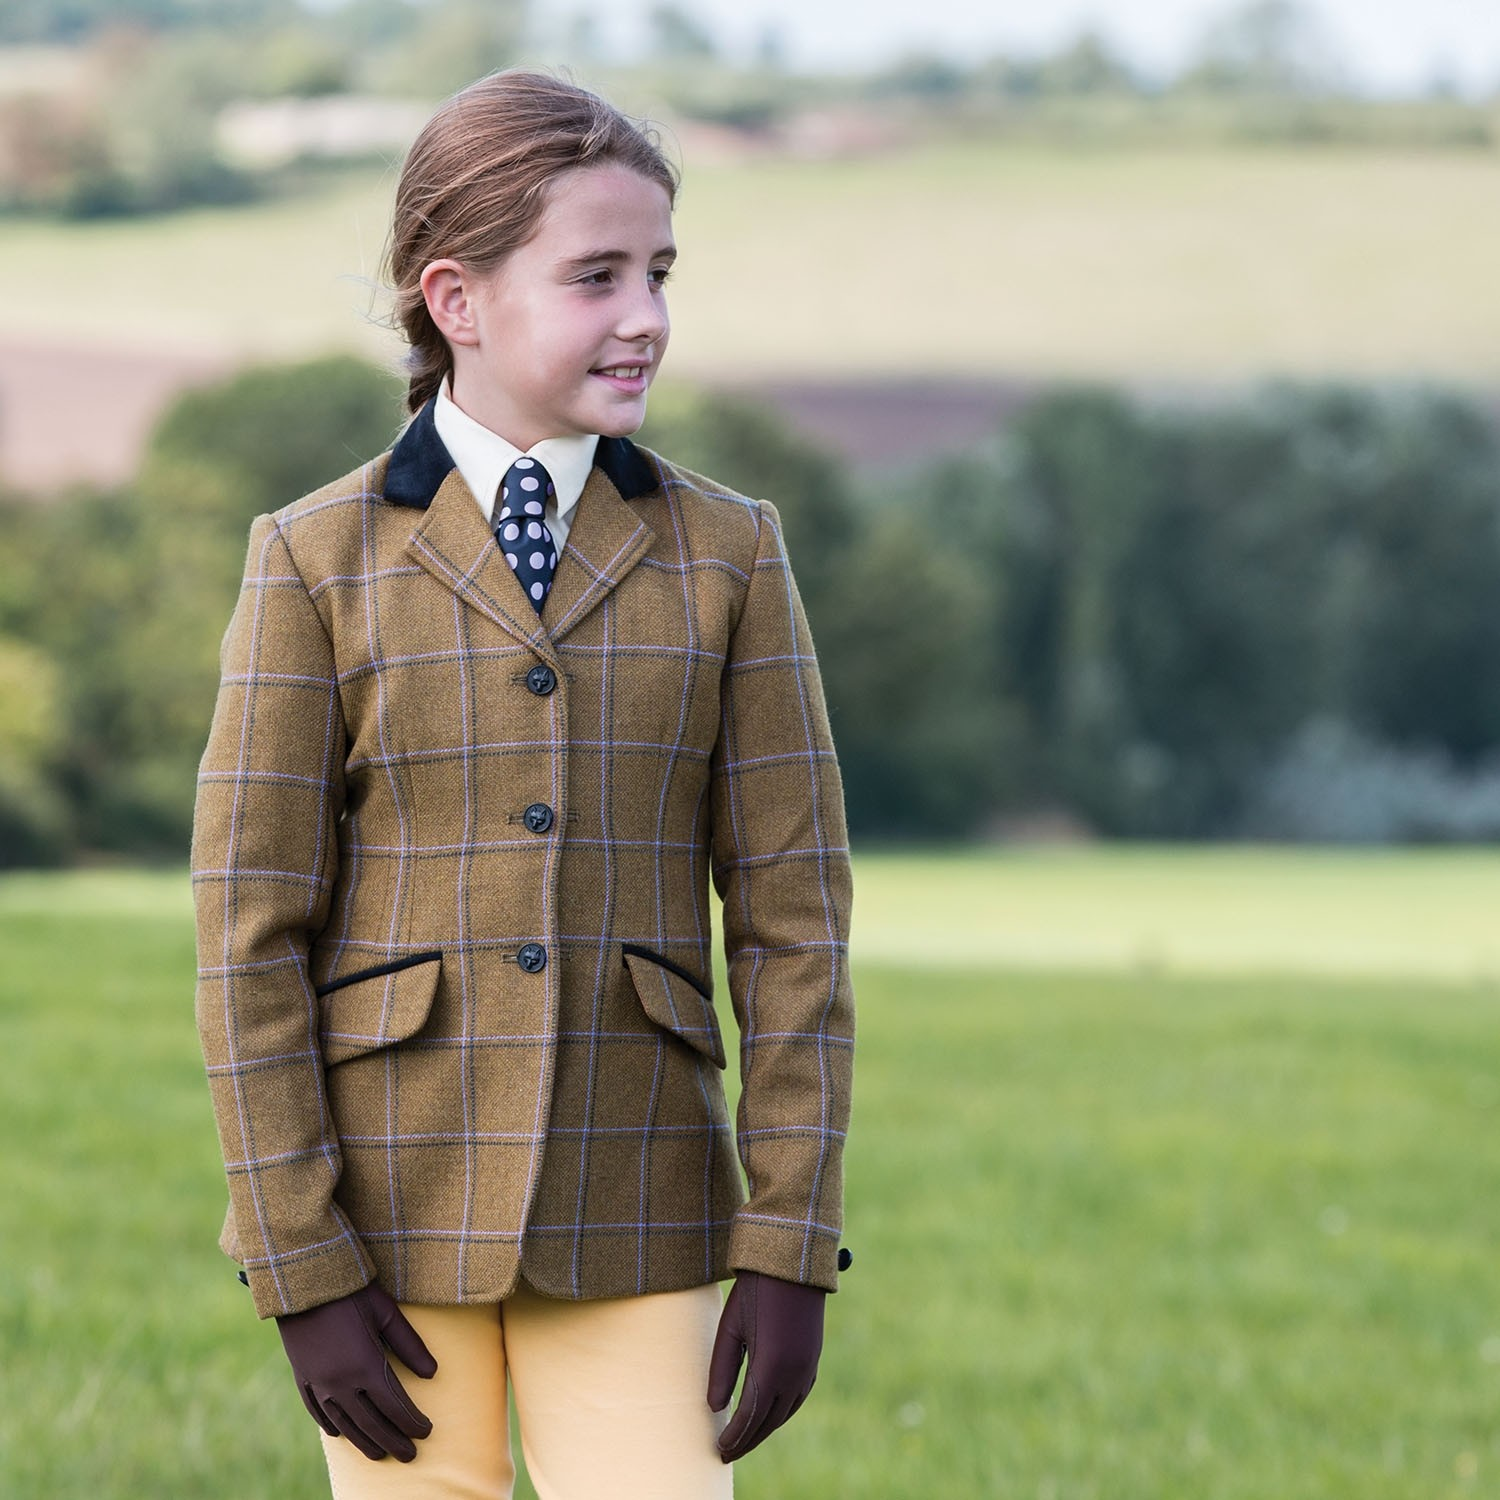 Equetech Junior Studham Deluxe Tweed Riding Jacket  - Thomas Irving's equestrian and accessories store  Equetech Junior Studham Deluxe Tweed Riding Jacket